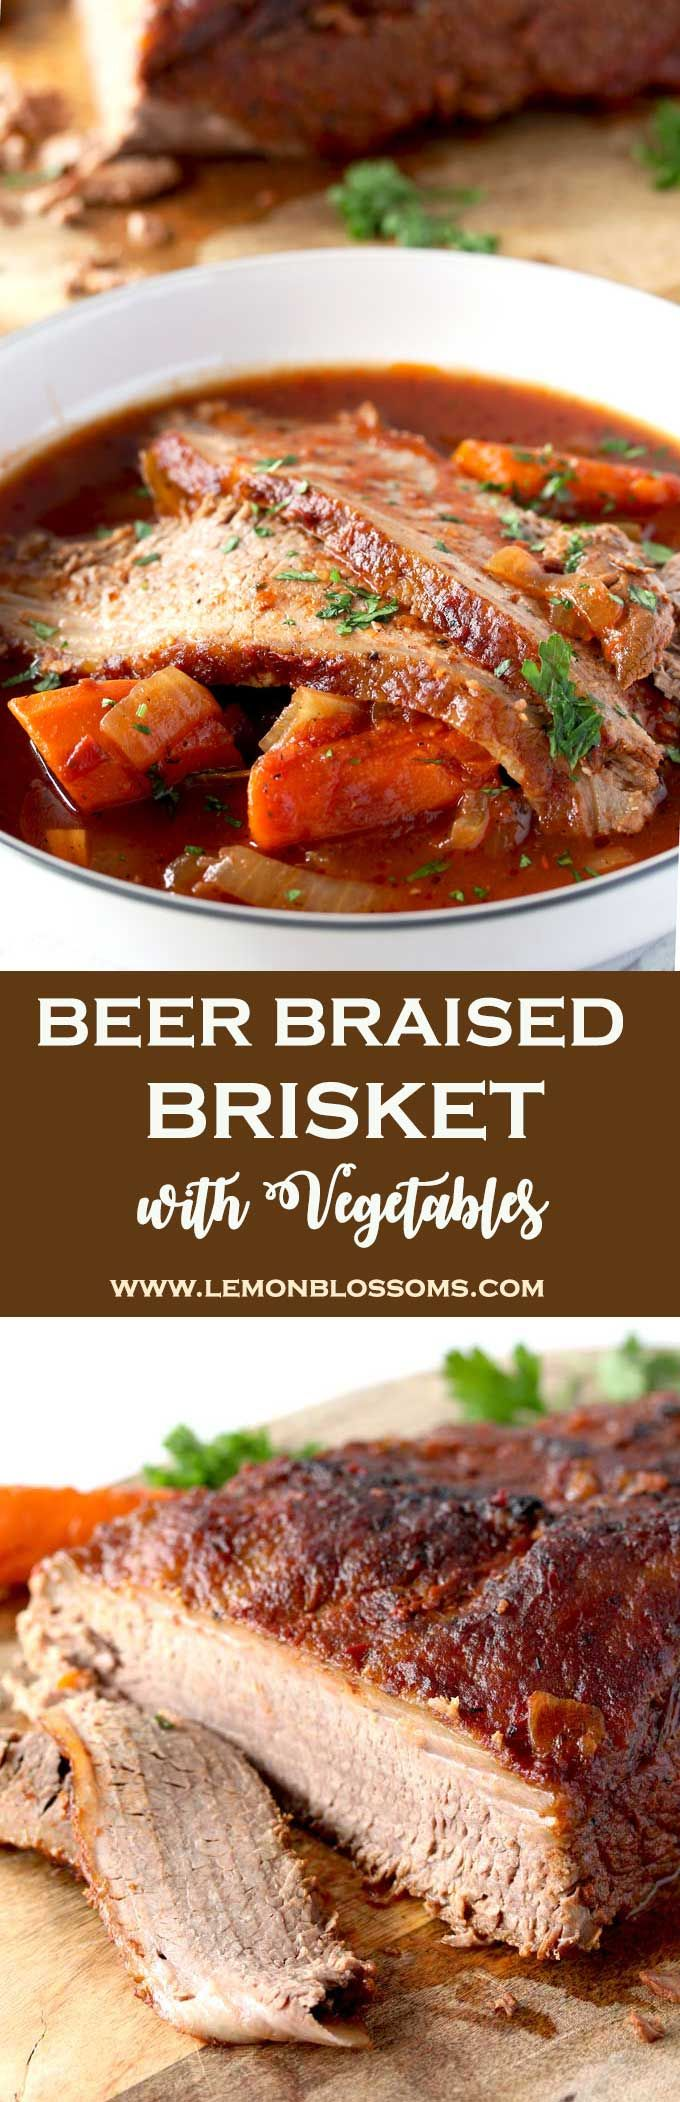 This incredibly tender Beer Braised Brisket with Vegetables is richly flavored, succulent and delicious. Cooked low and slow in beer and crushed tomatoes until mouthwatering perfection. With onions and carrots this is the perfect make ahead dinner party dish! #comfortfood #brisket #brisketrecipe via @lmnblossoms